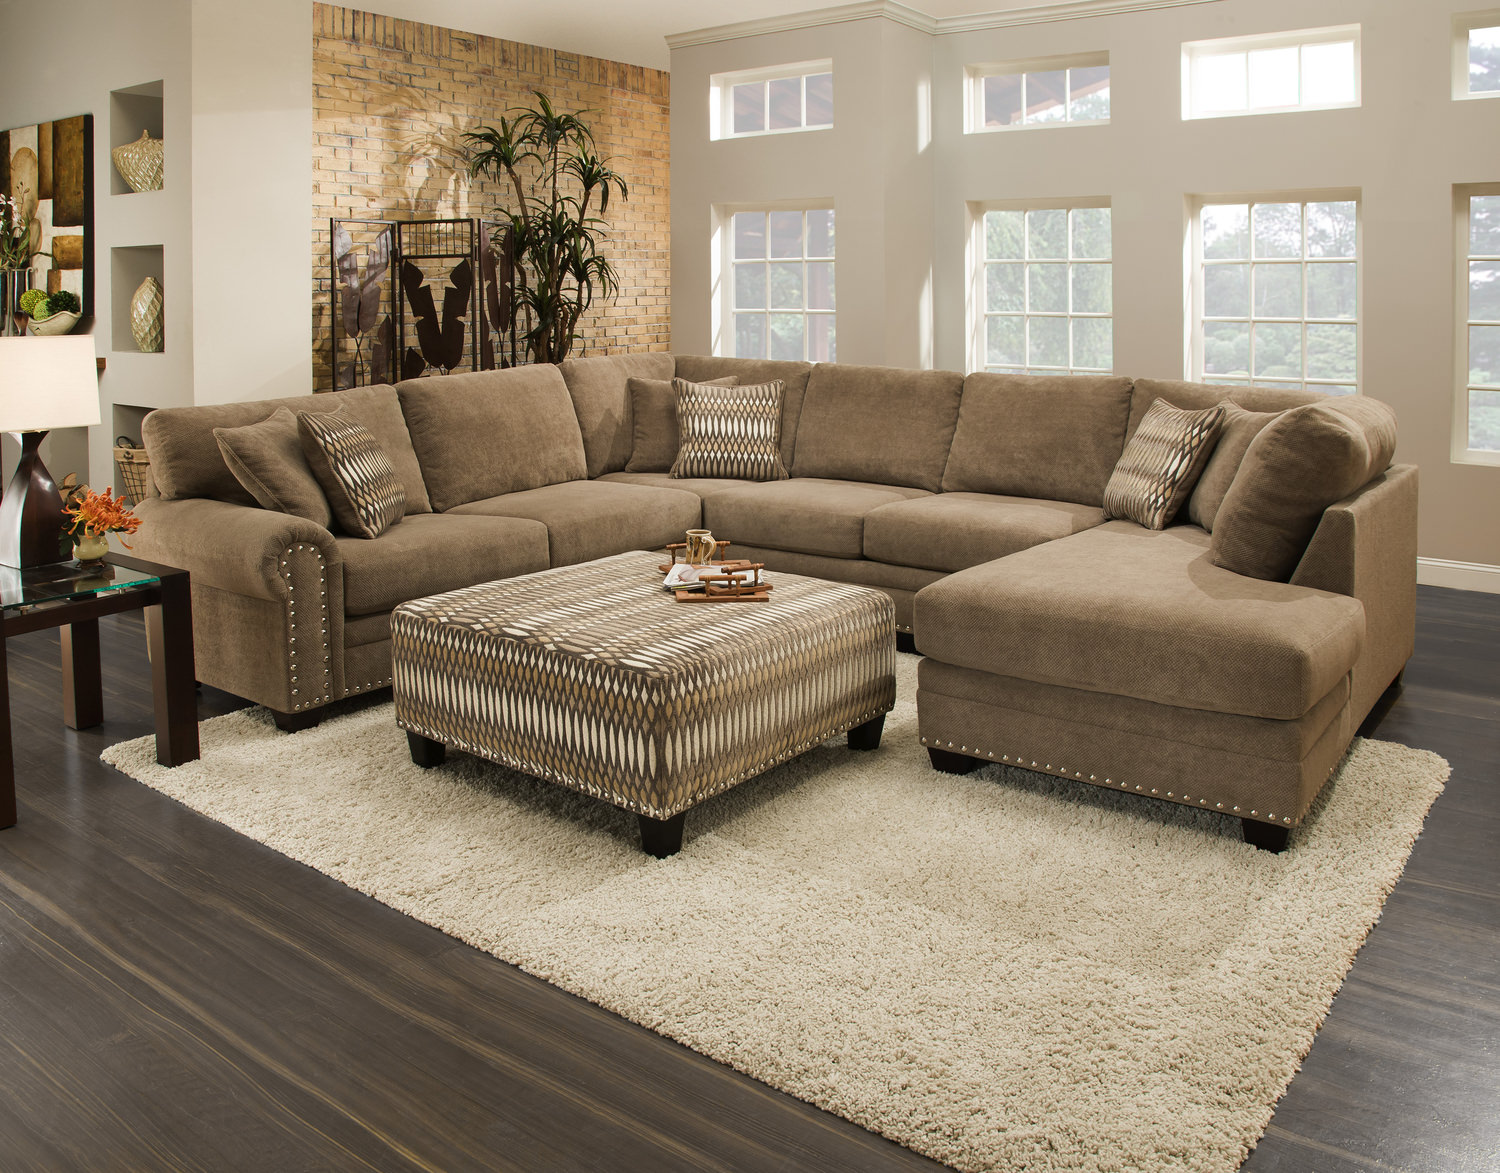 sale 1999 : sectional couch with large ottoman - Sectionals, Sofas & Couches